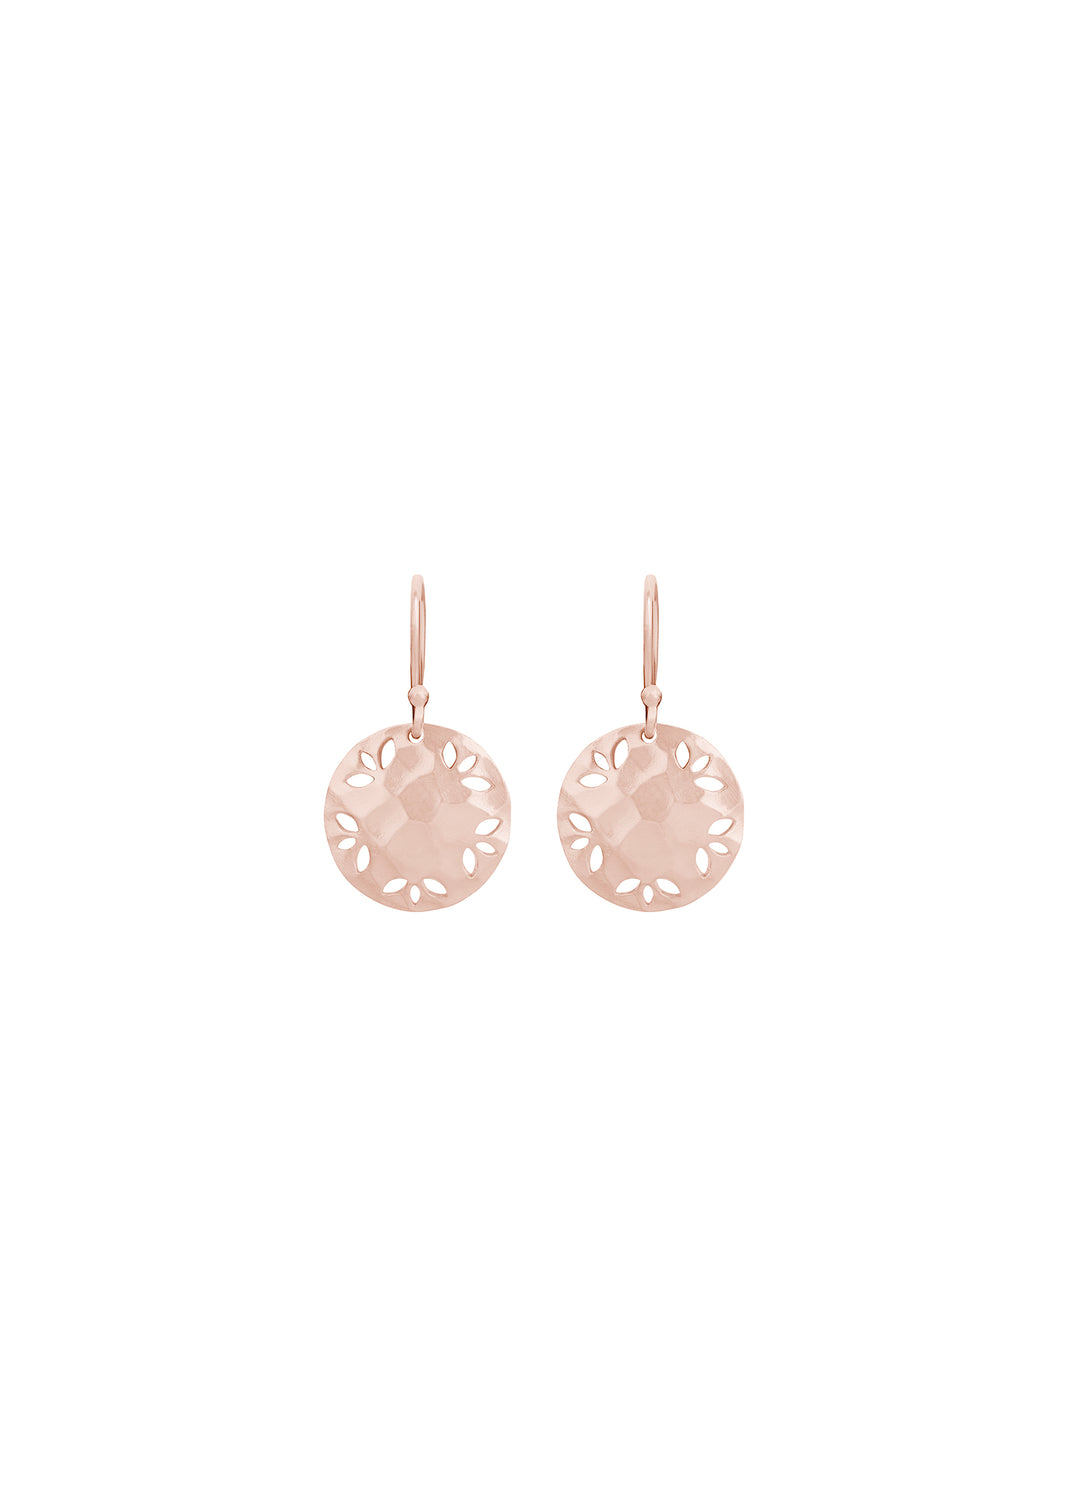 Nicole Fendel Mika Disc Earring - The Artisan Storeroom